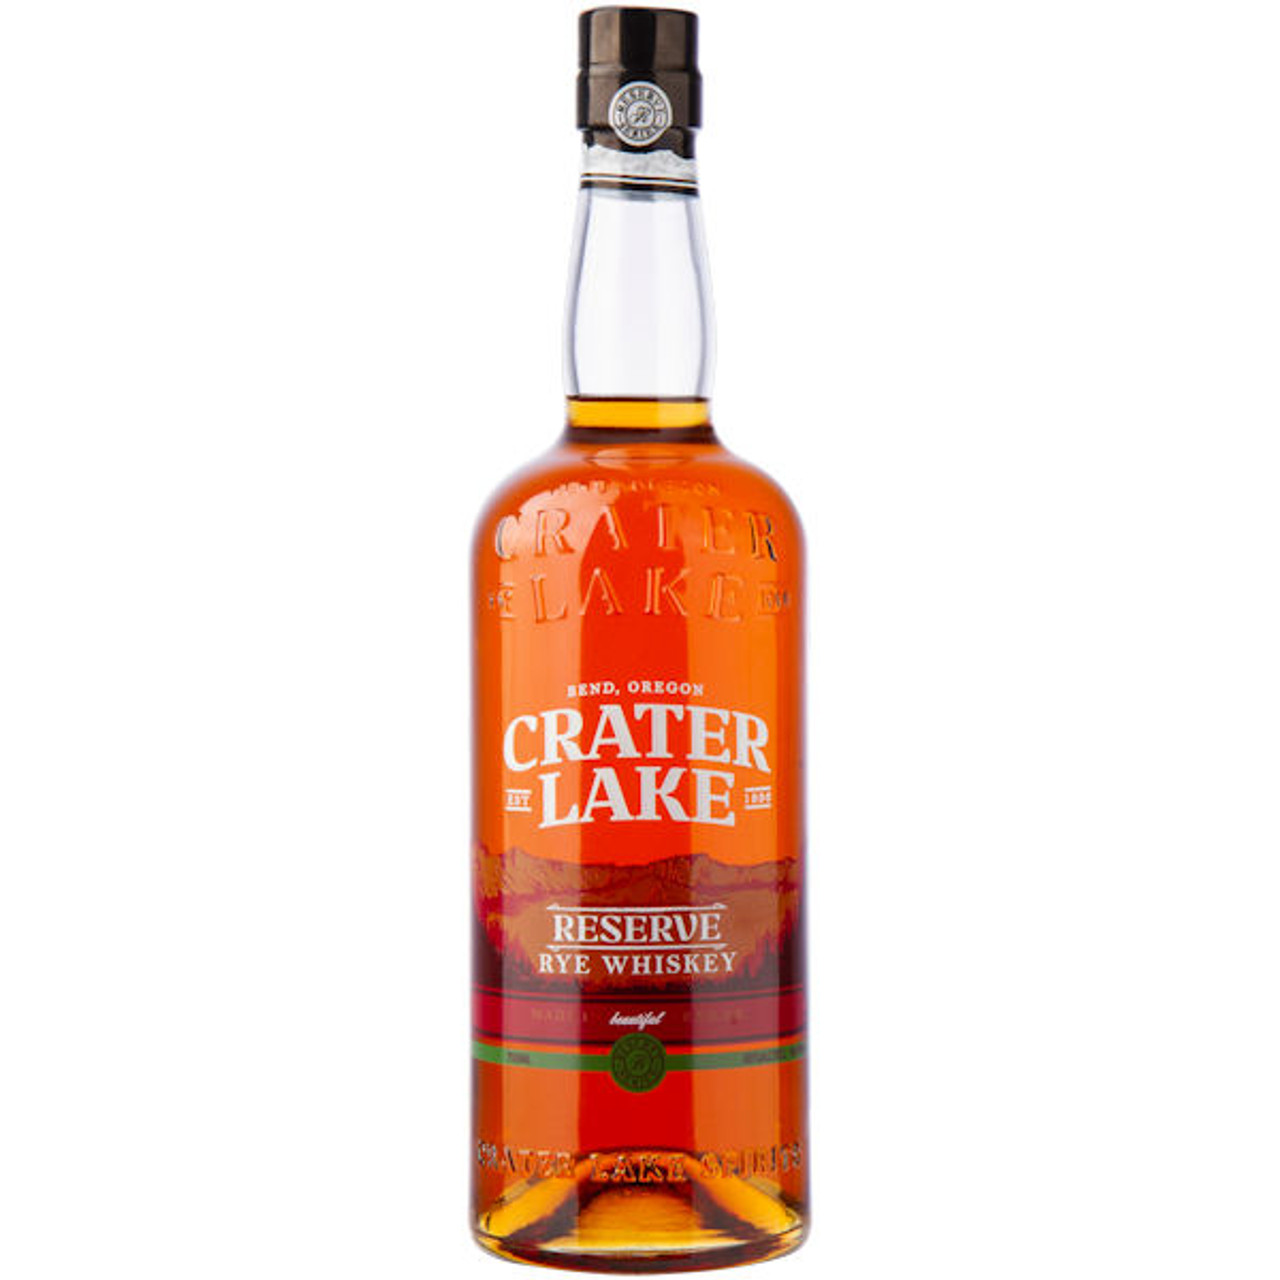 Crater Lake Reserve Rye Whiskey 750ml